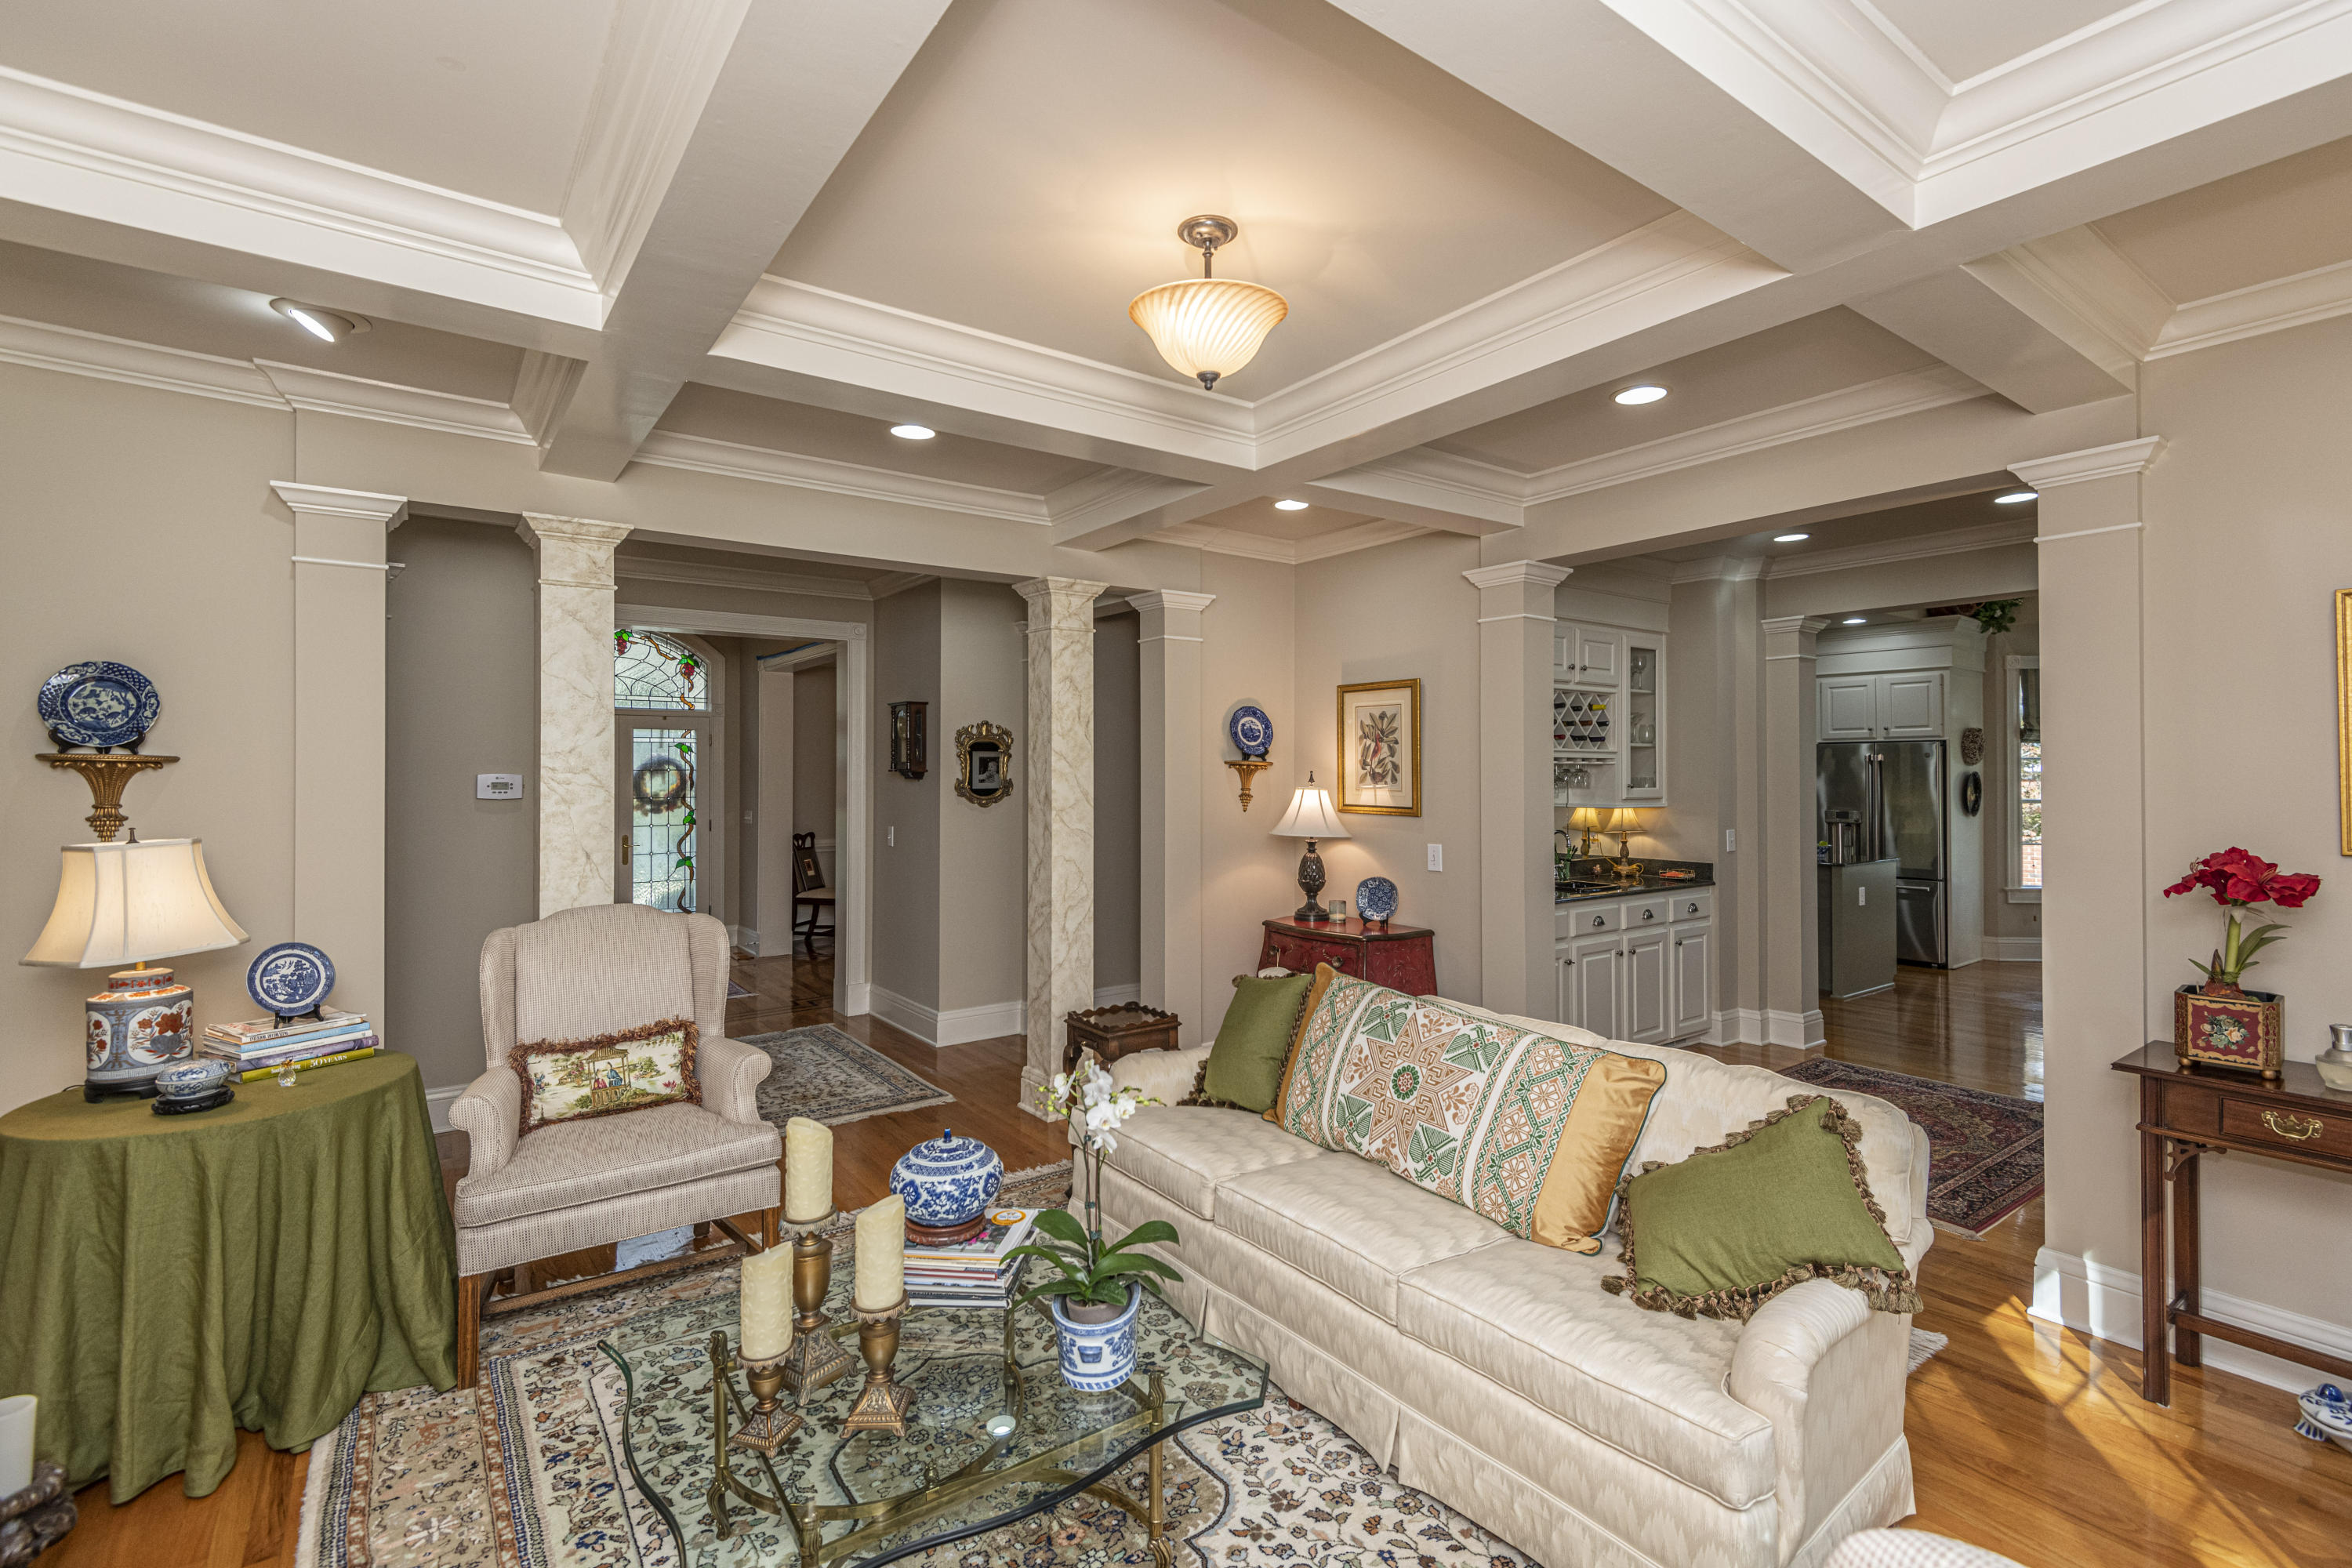 Coosaw Creek Country Club Homes For Sale - 8642 Fairway Woods, North Charleston, SC - 21